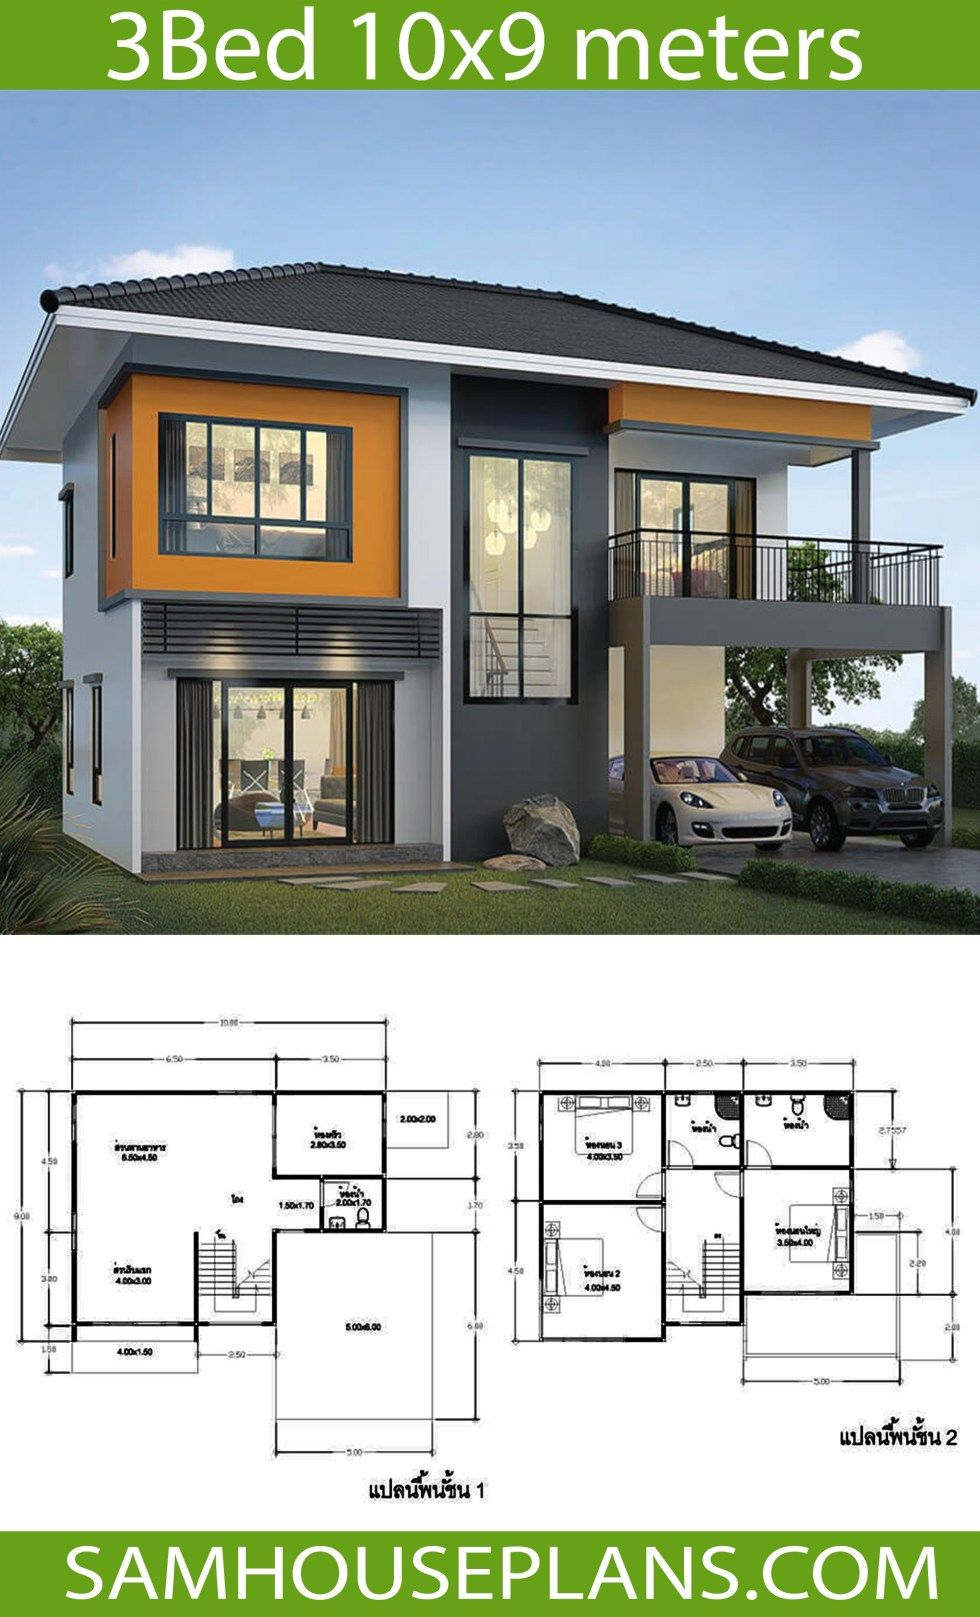 House Plans Idea 10x9m With 3 Bedrooms Sam House Plans Modern House Plans Architectural House Plans New Model House